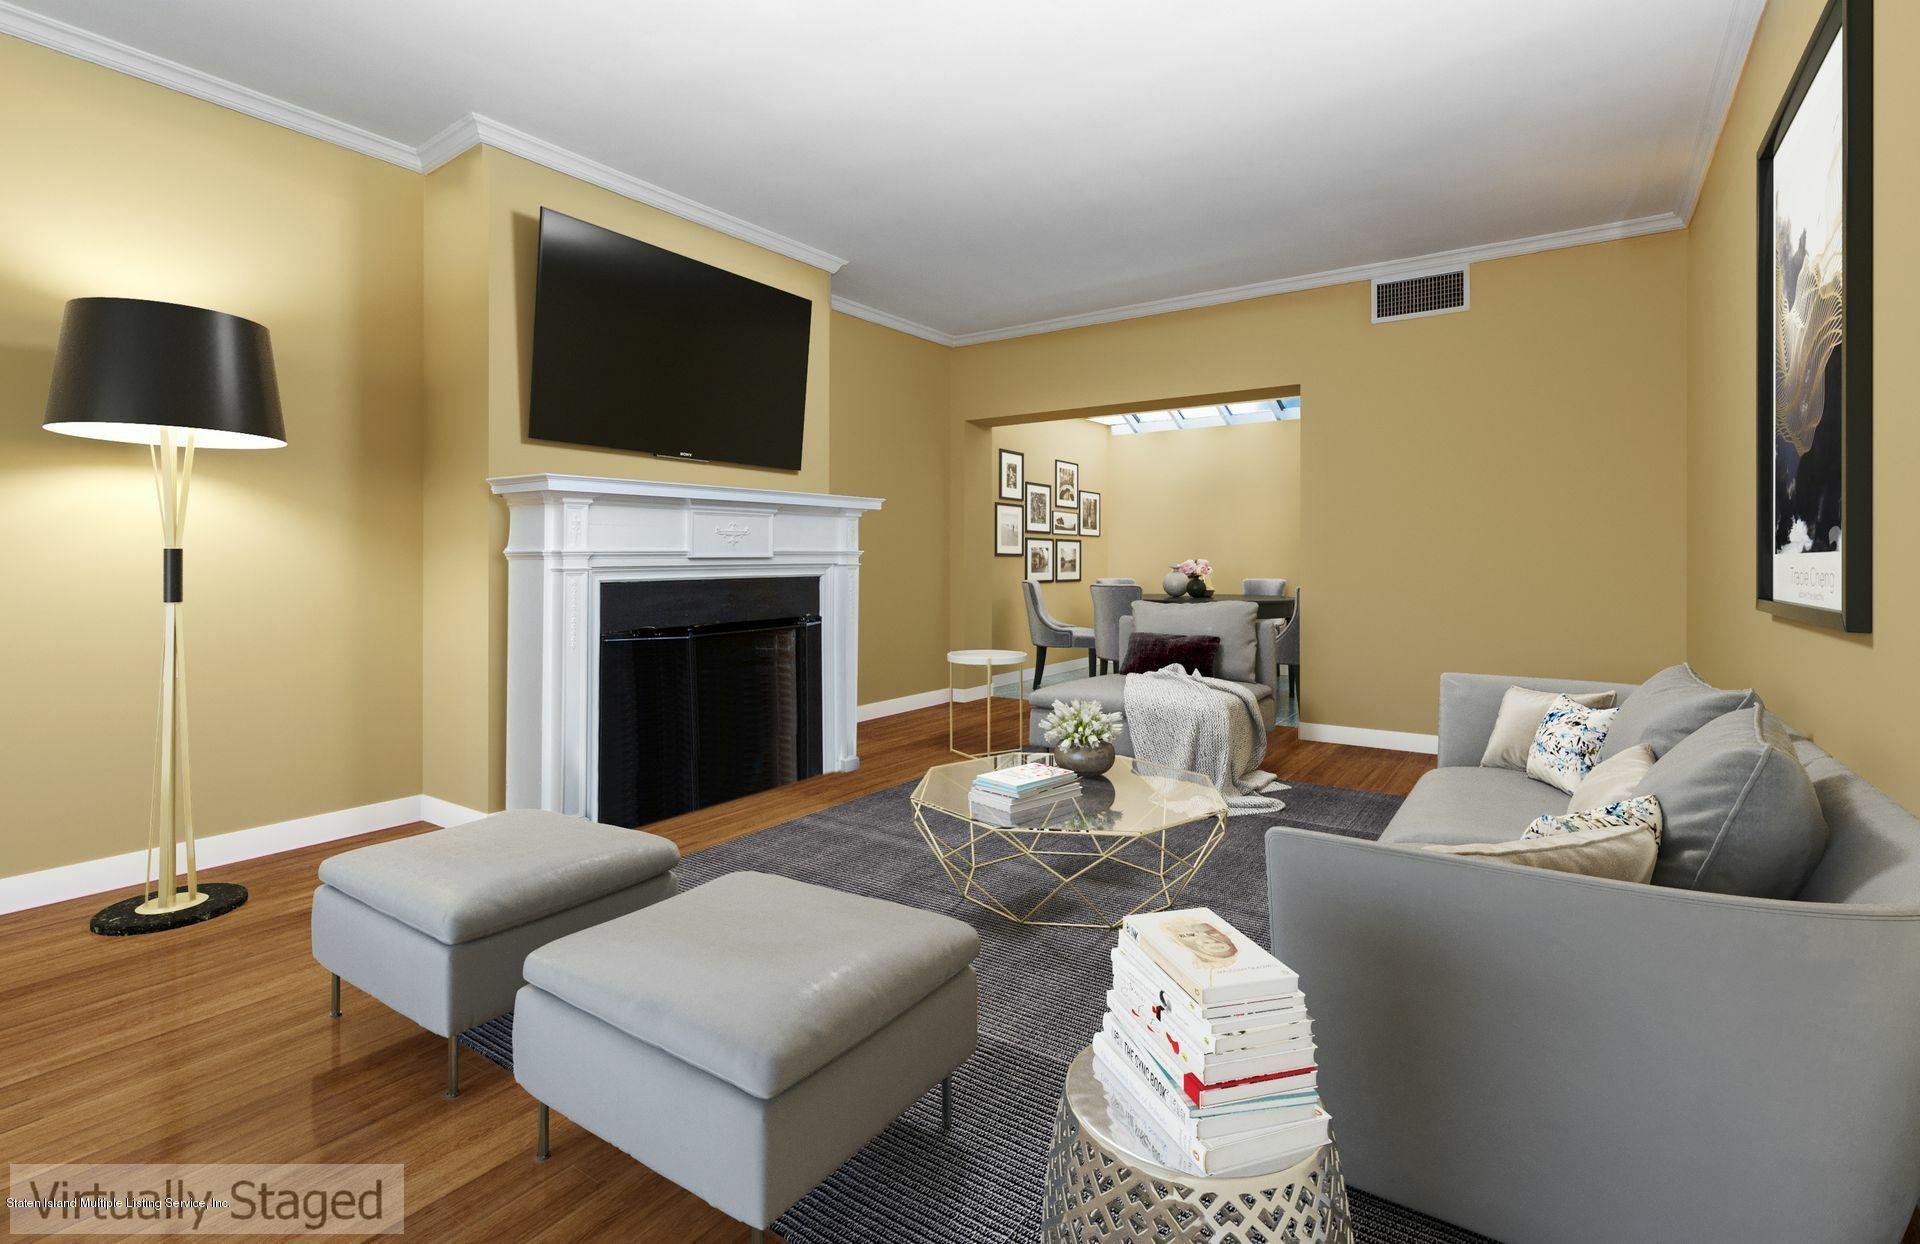 Single Family - Attached 2 Grace Court  Brooklyn, NY 11201, MLS-1127527-5